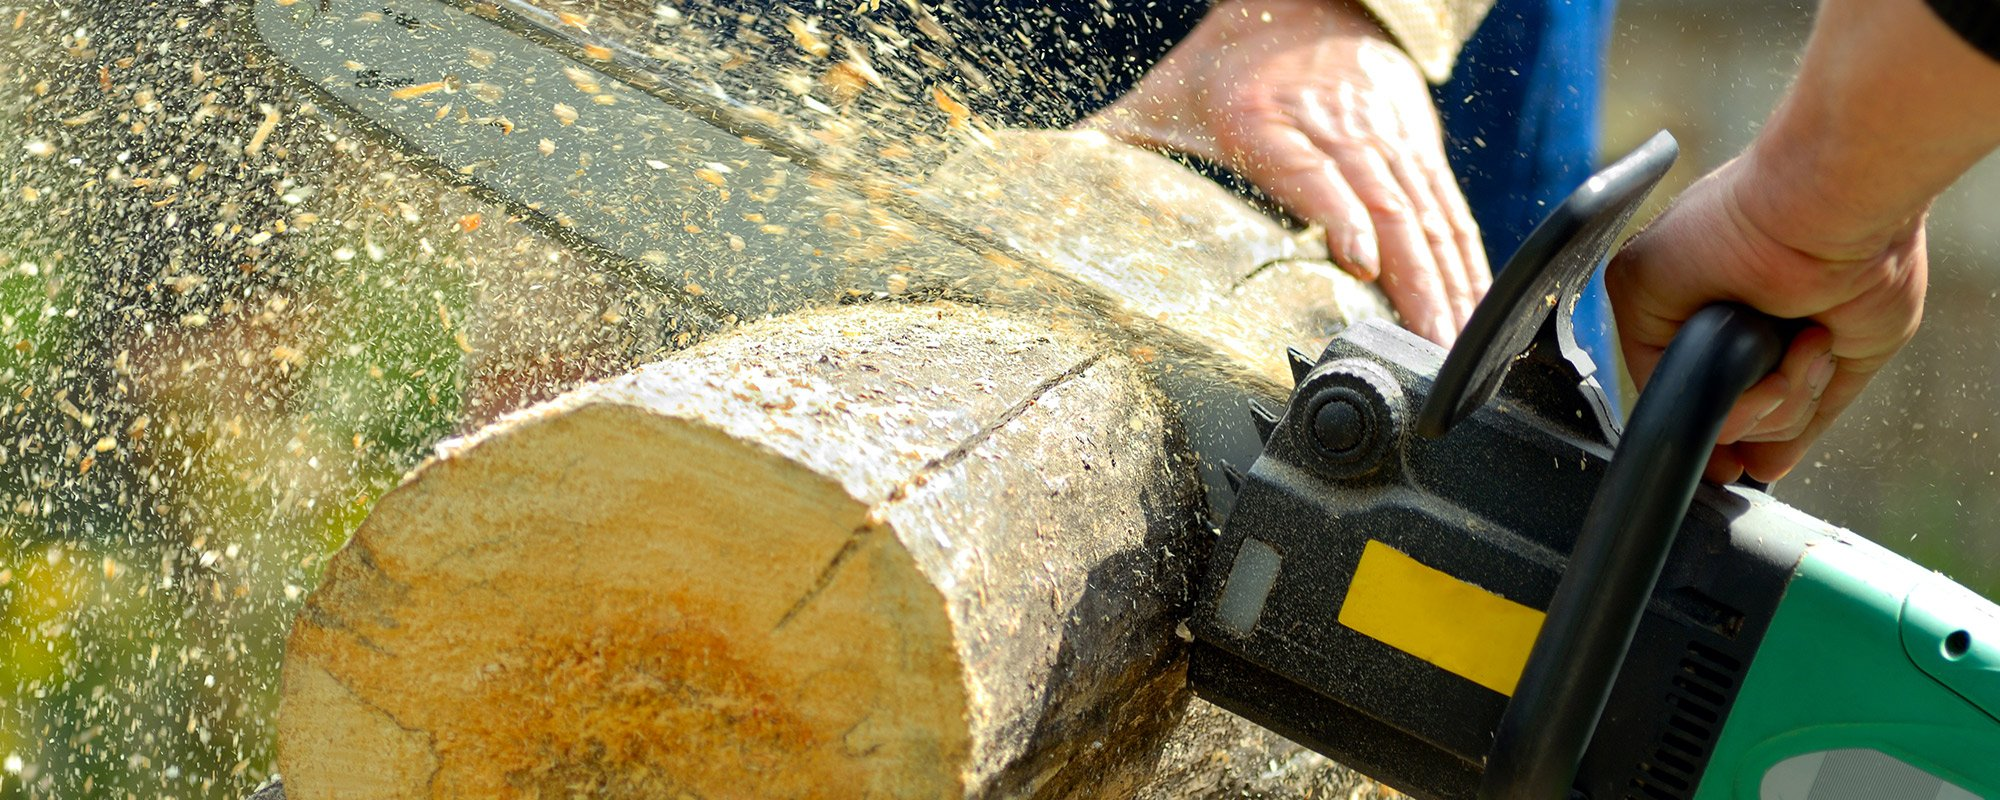 Log getting cut with the help of machine